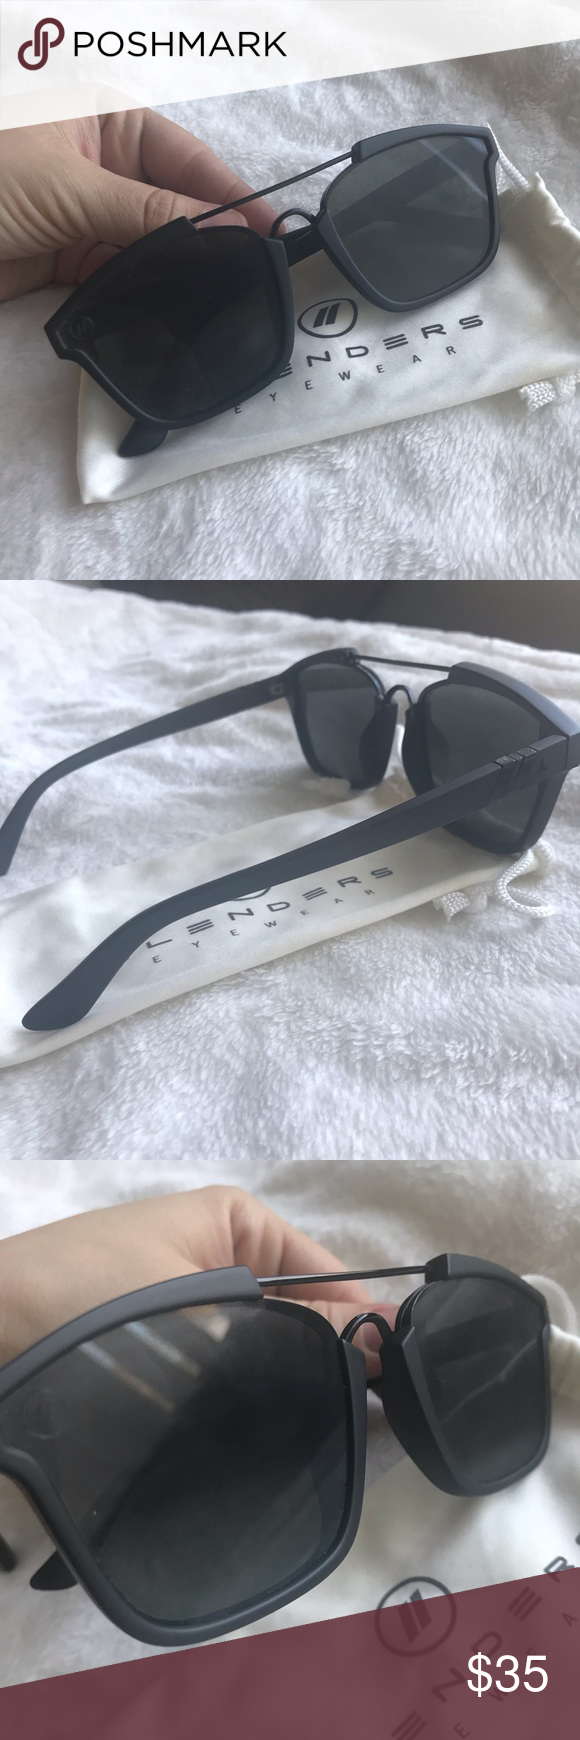 0a714f72b9eb Blenders eyewear Westbrook Murdered out matte black frames Worn once and in  perfect condition! They are just sitting on my dresser needing a new home!